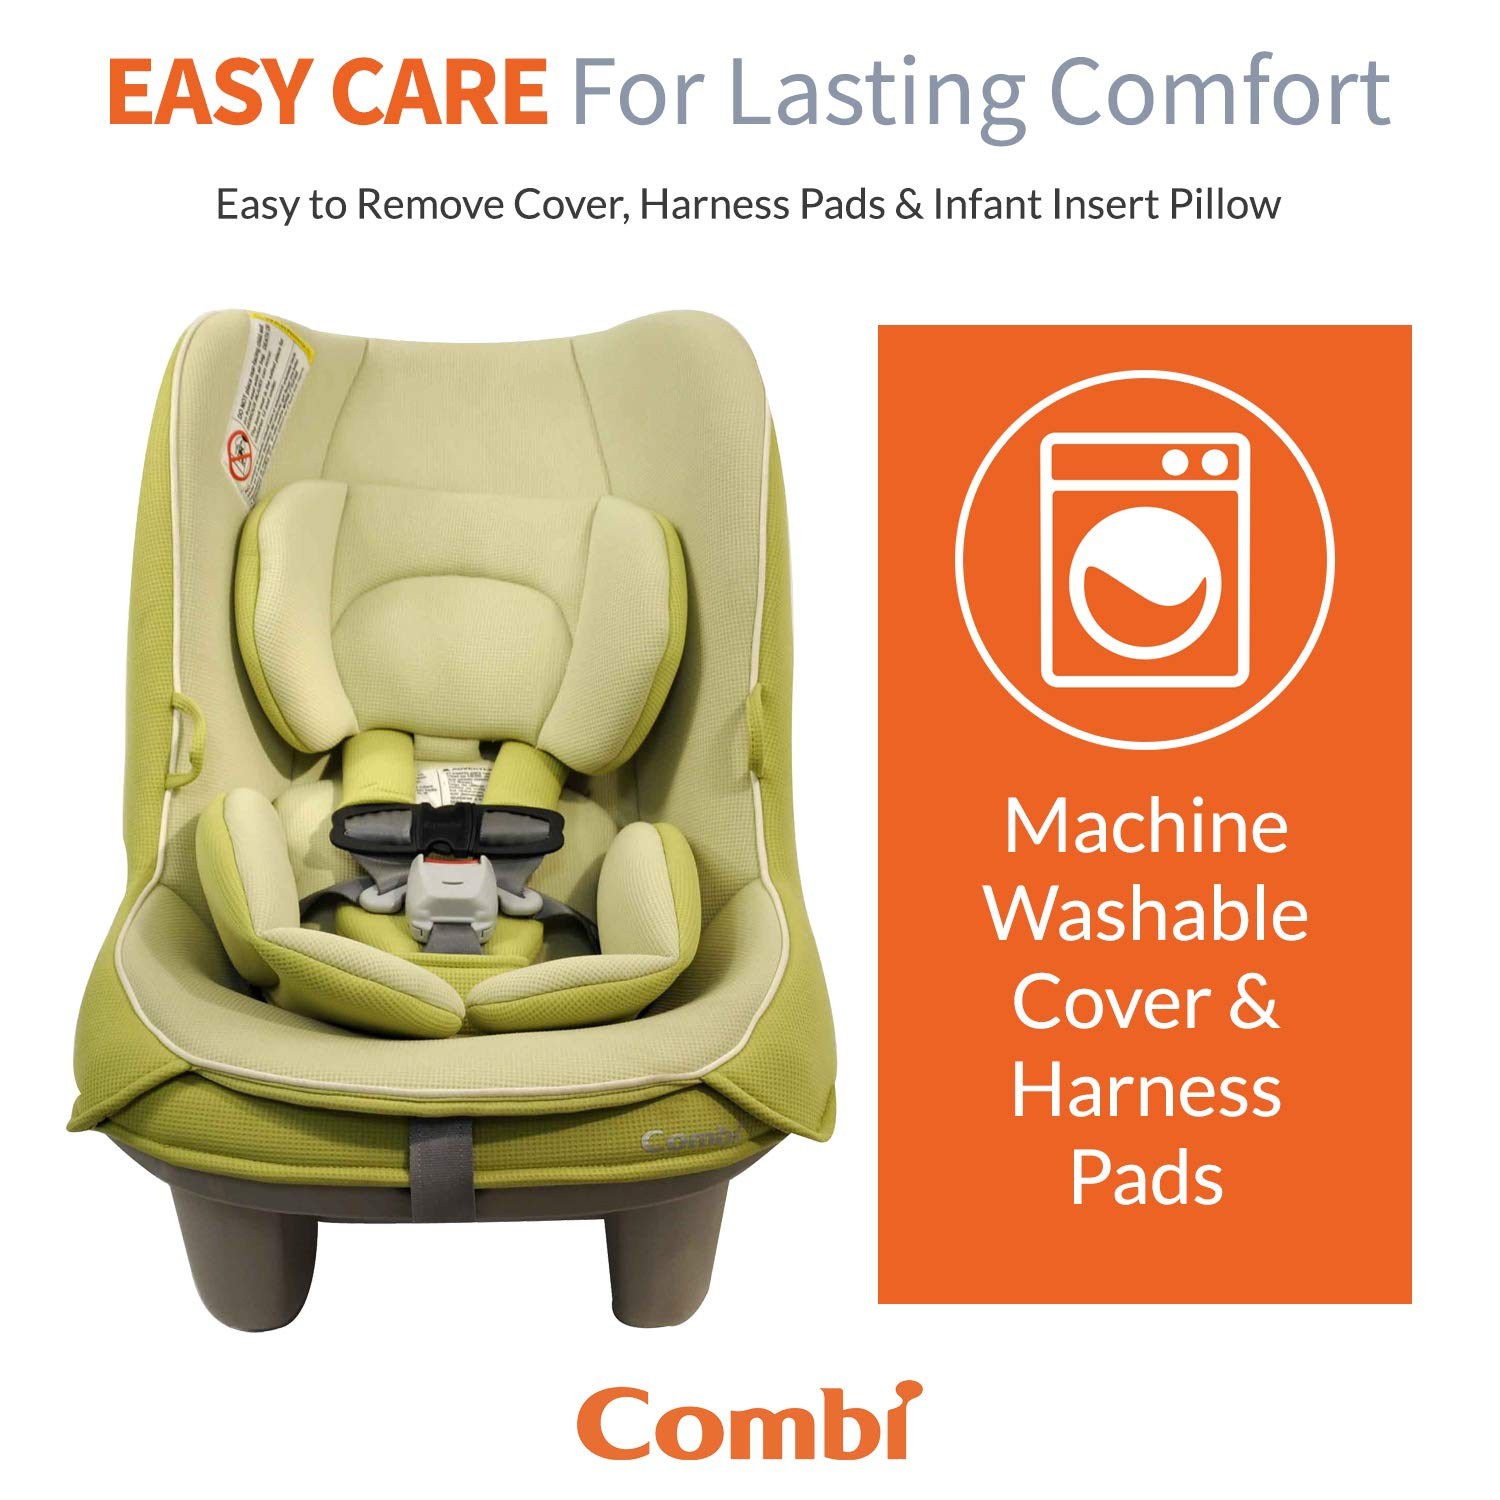 Grape Quick Install Combi Coccoro Streamlined Lightweight Convertible Car Seat 50/% Lighter Than Other Leading Brands Tru-Safe Impact Protection 3 Across In Most Vehicles Ideal for Compacts